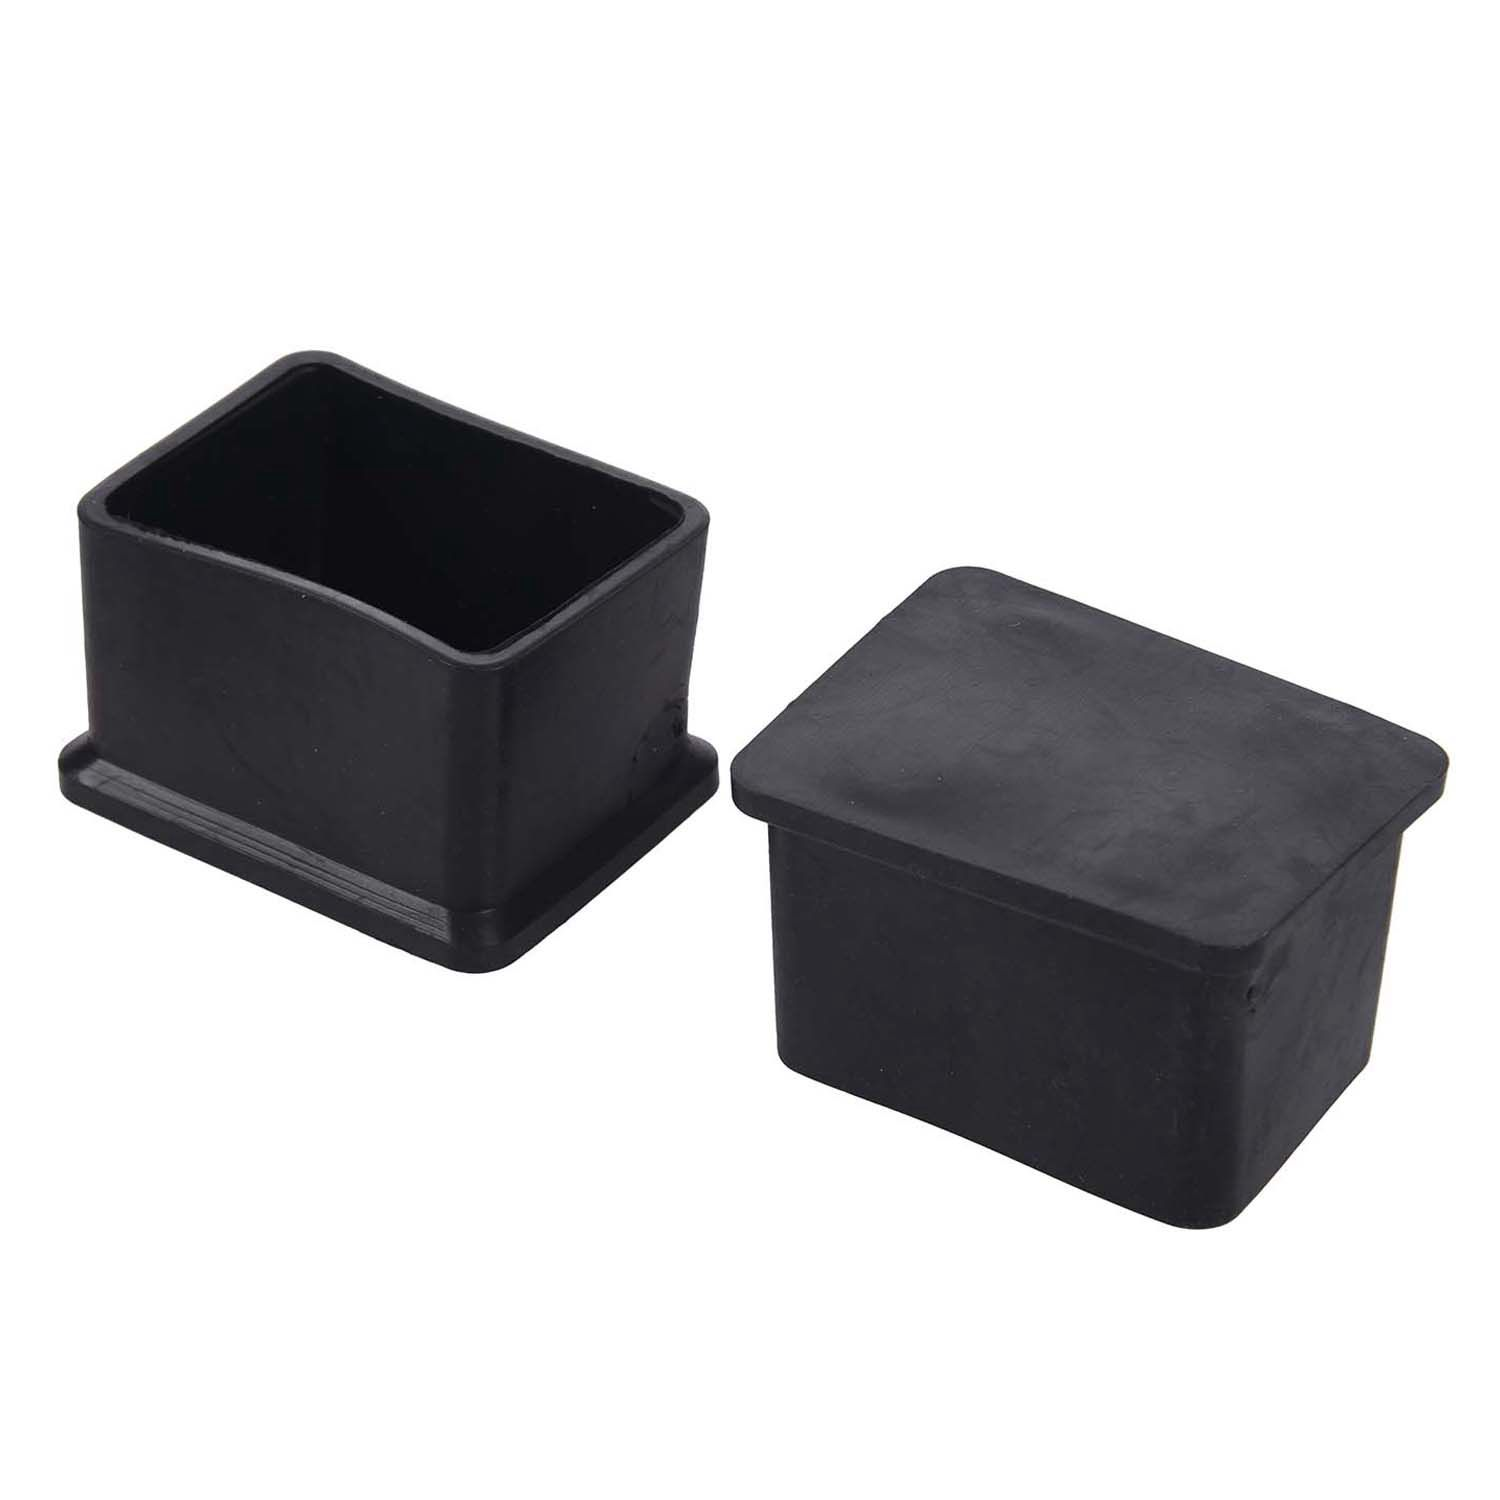 Hot Sale 10 Pcs Rubber 30x40mm Chair Table Foot Cover Furniture Leg Protectors